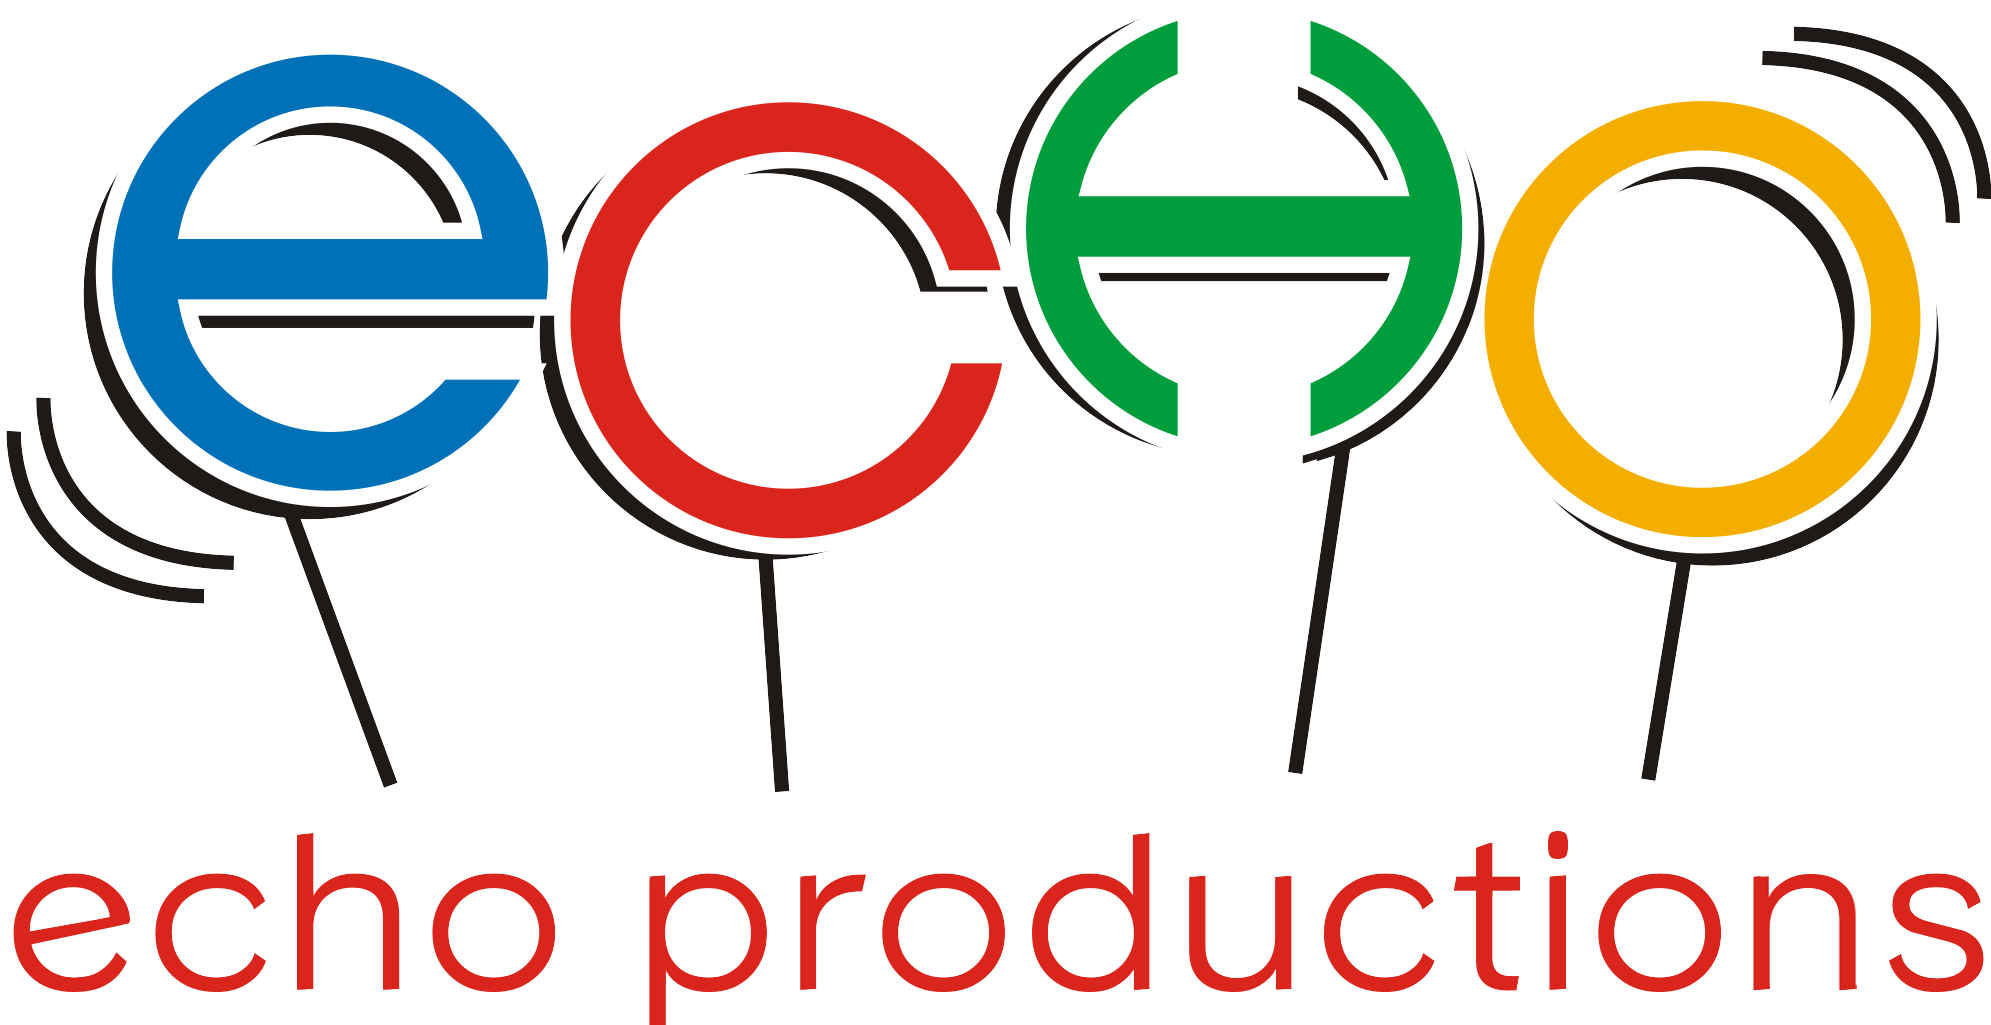 Echo Productions and Advertising